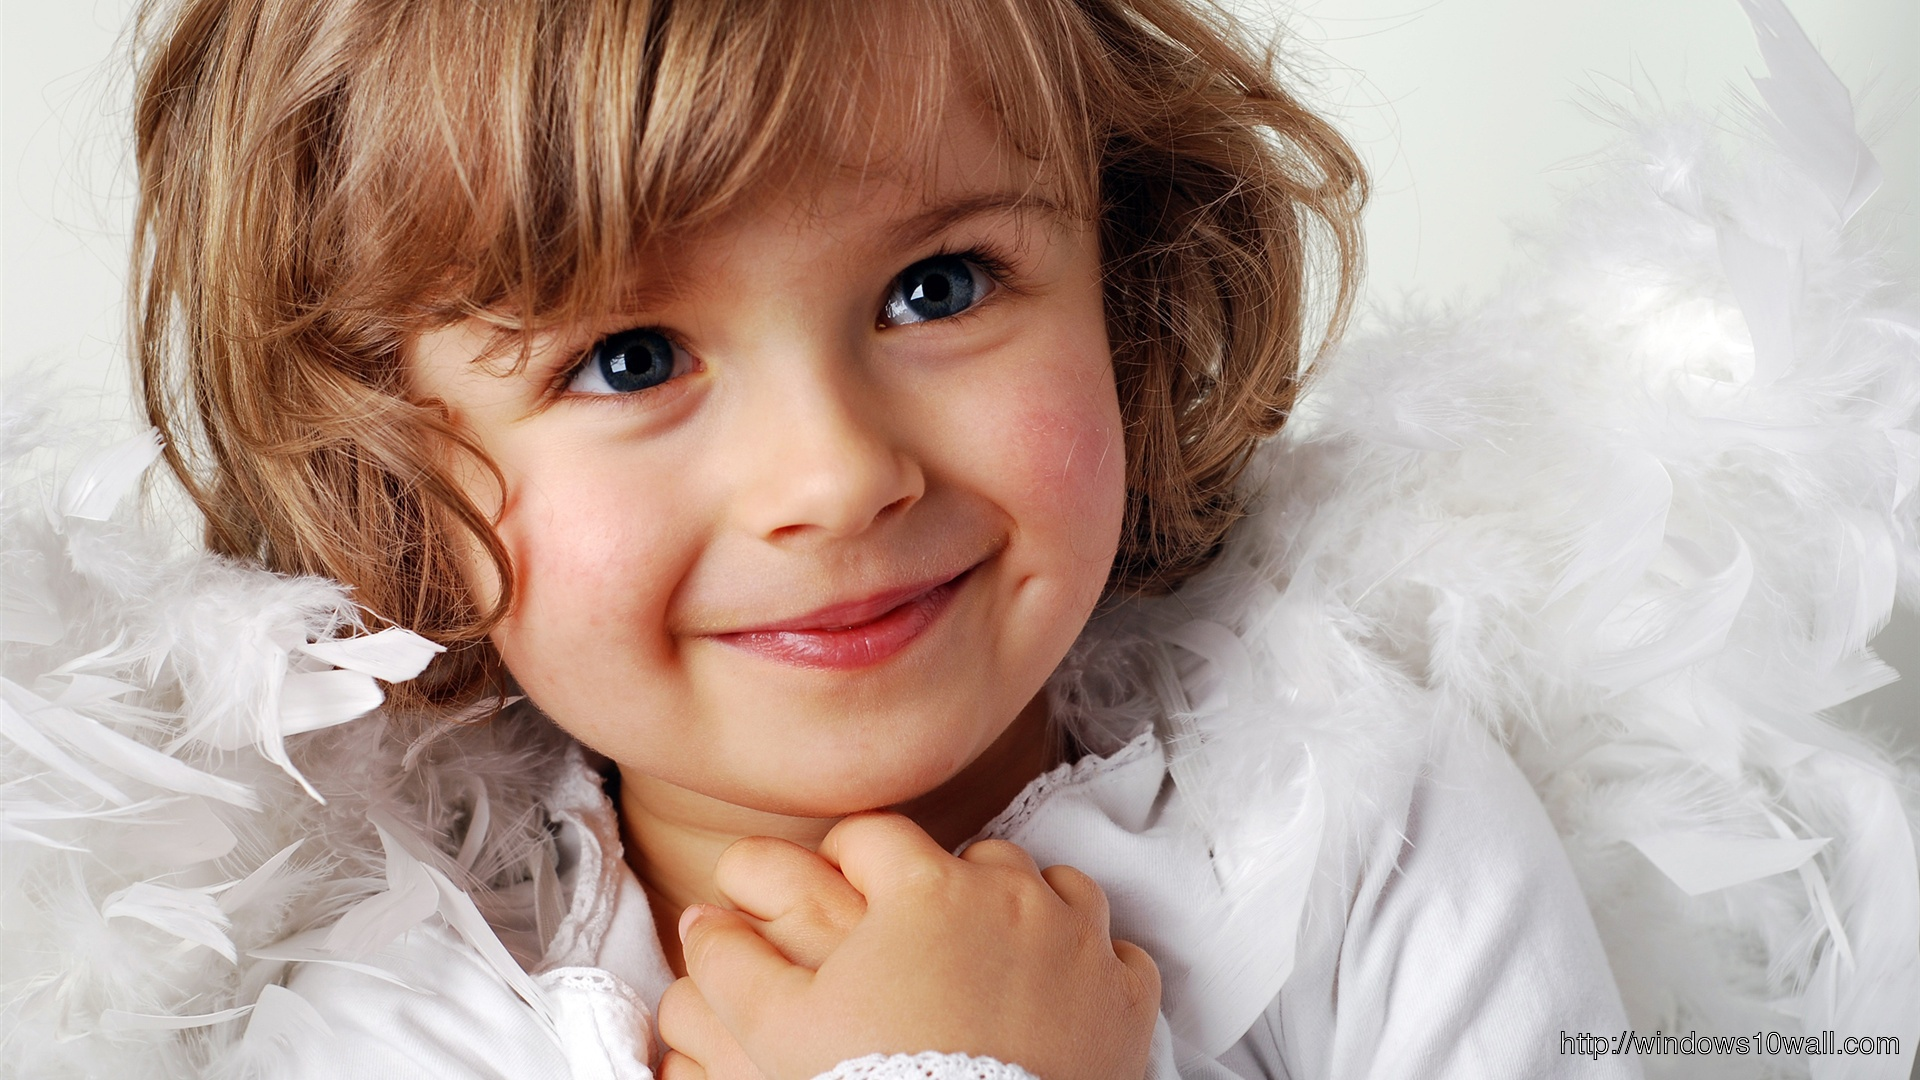 Cute little girl sweet smile Wallpapers